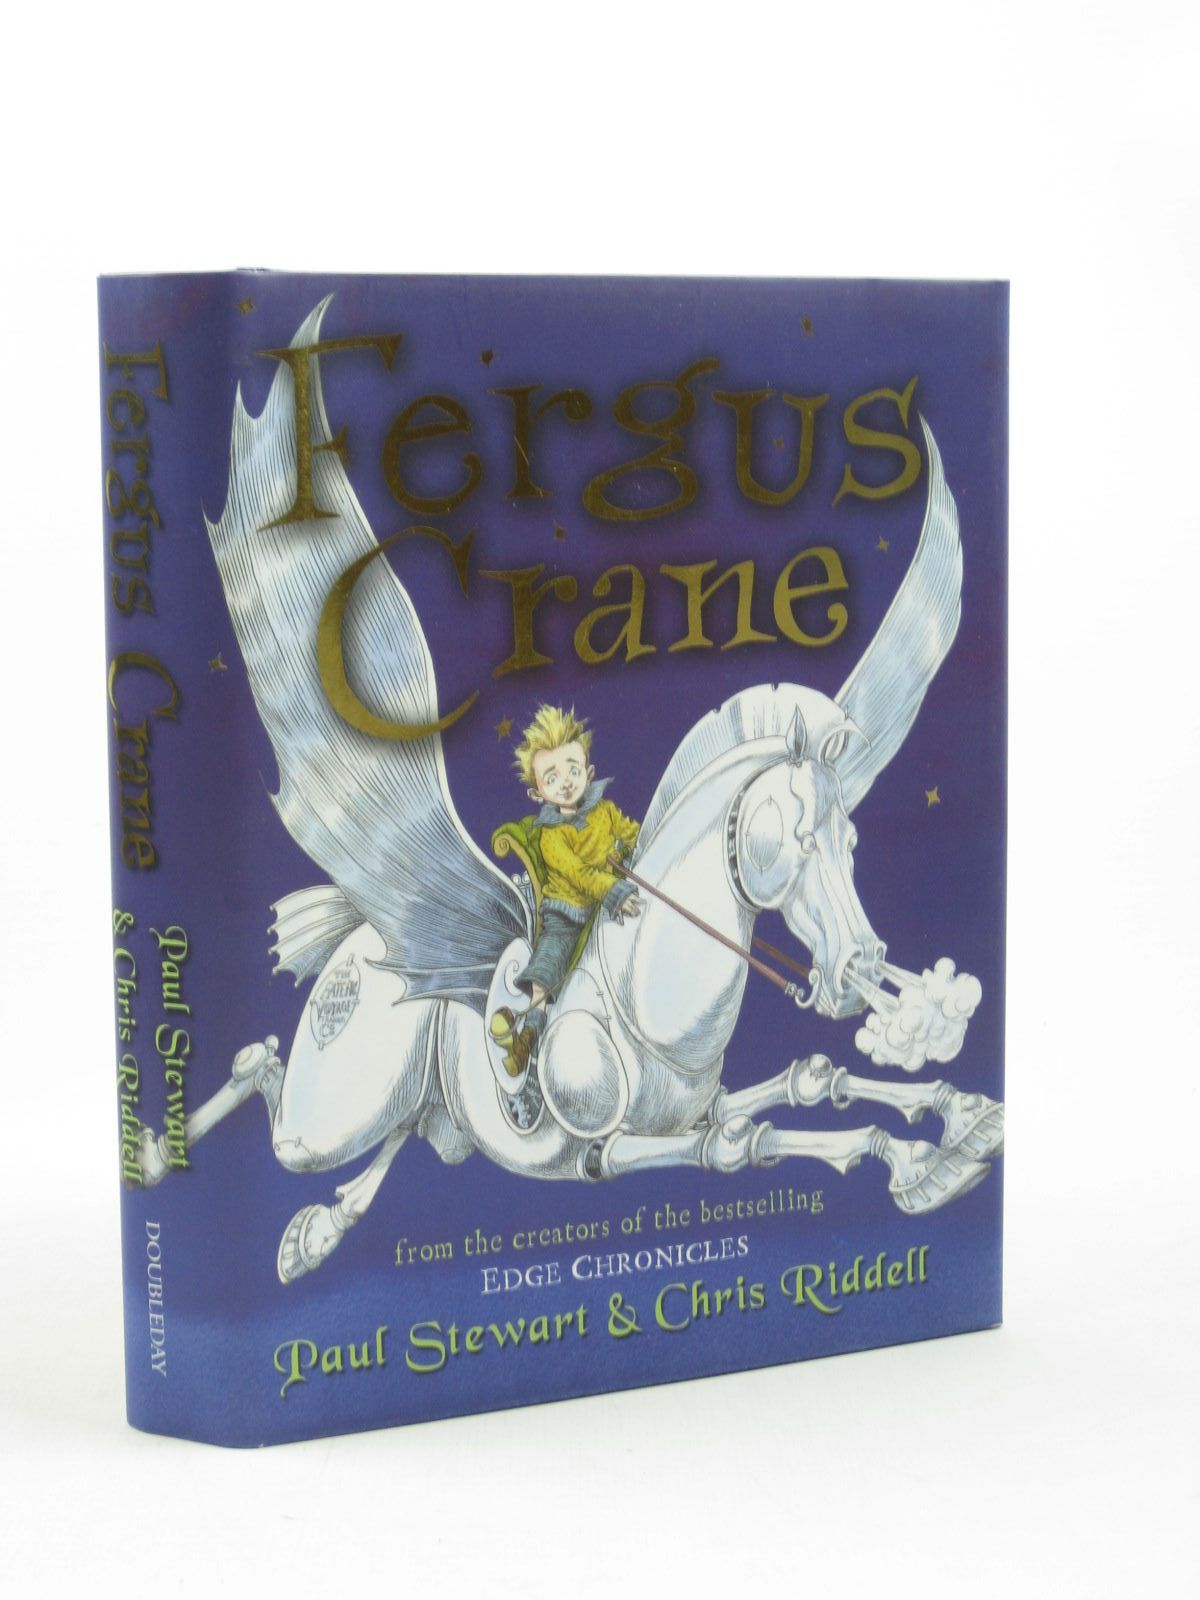 Photo of FERGUS CRANE written by Stewart, Paul illustrated by Riddell, Chris published by Doubleday (STOCK CODE: 1312667)  for sale by Stella & Rose's Books